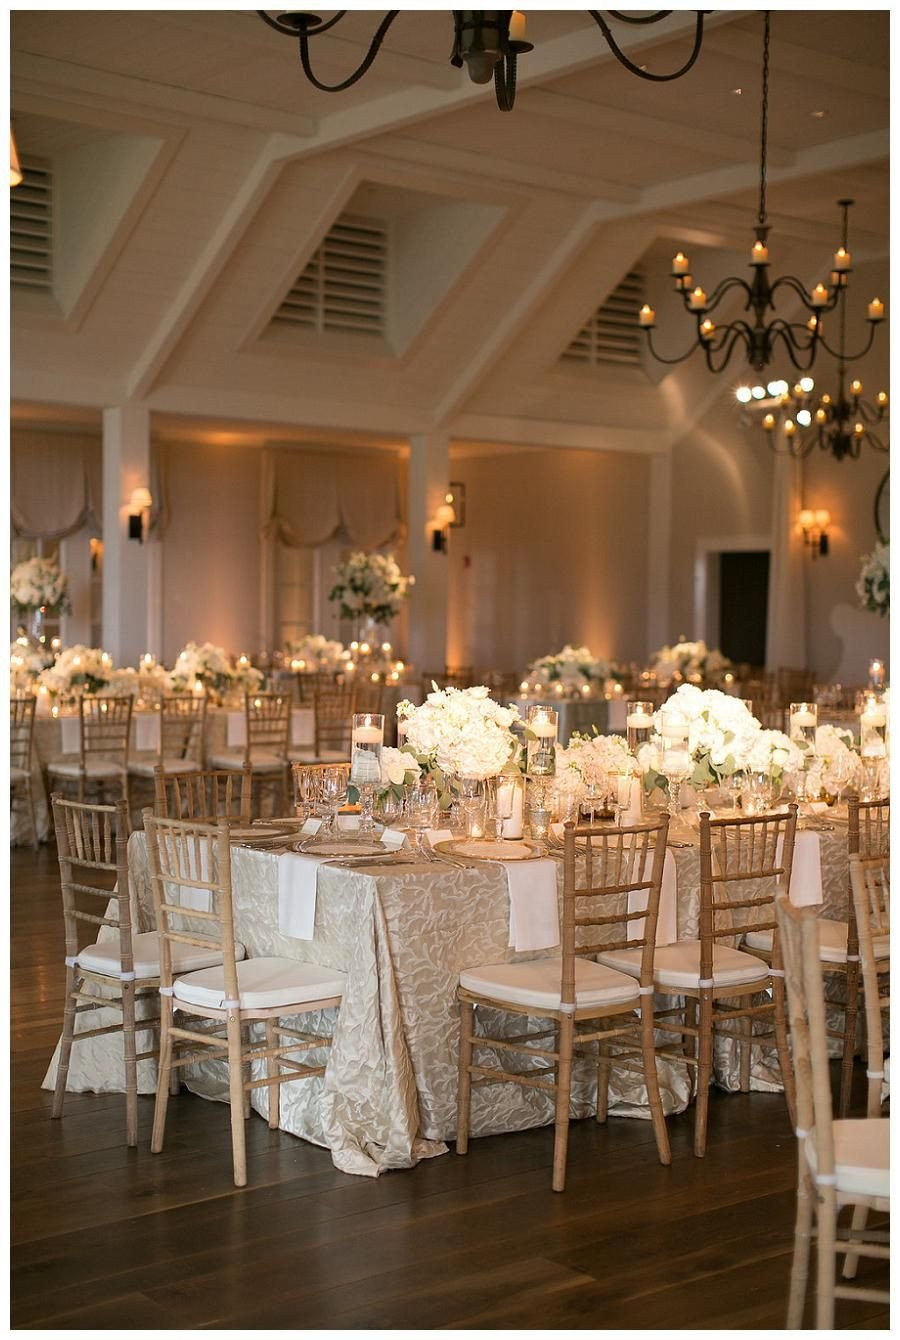 Gold and Ivory Wedding Decor Lovely Gold Ivory and White Wedding Reception Decor with White Florals In Glass Vessels Place